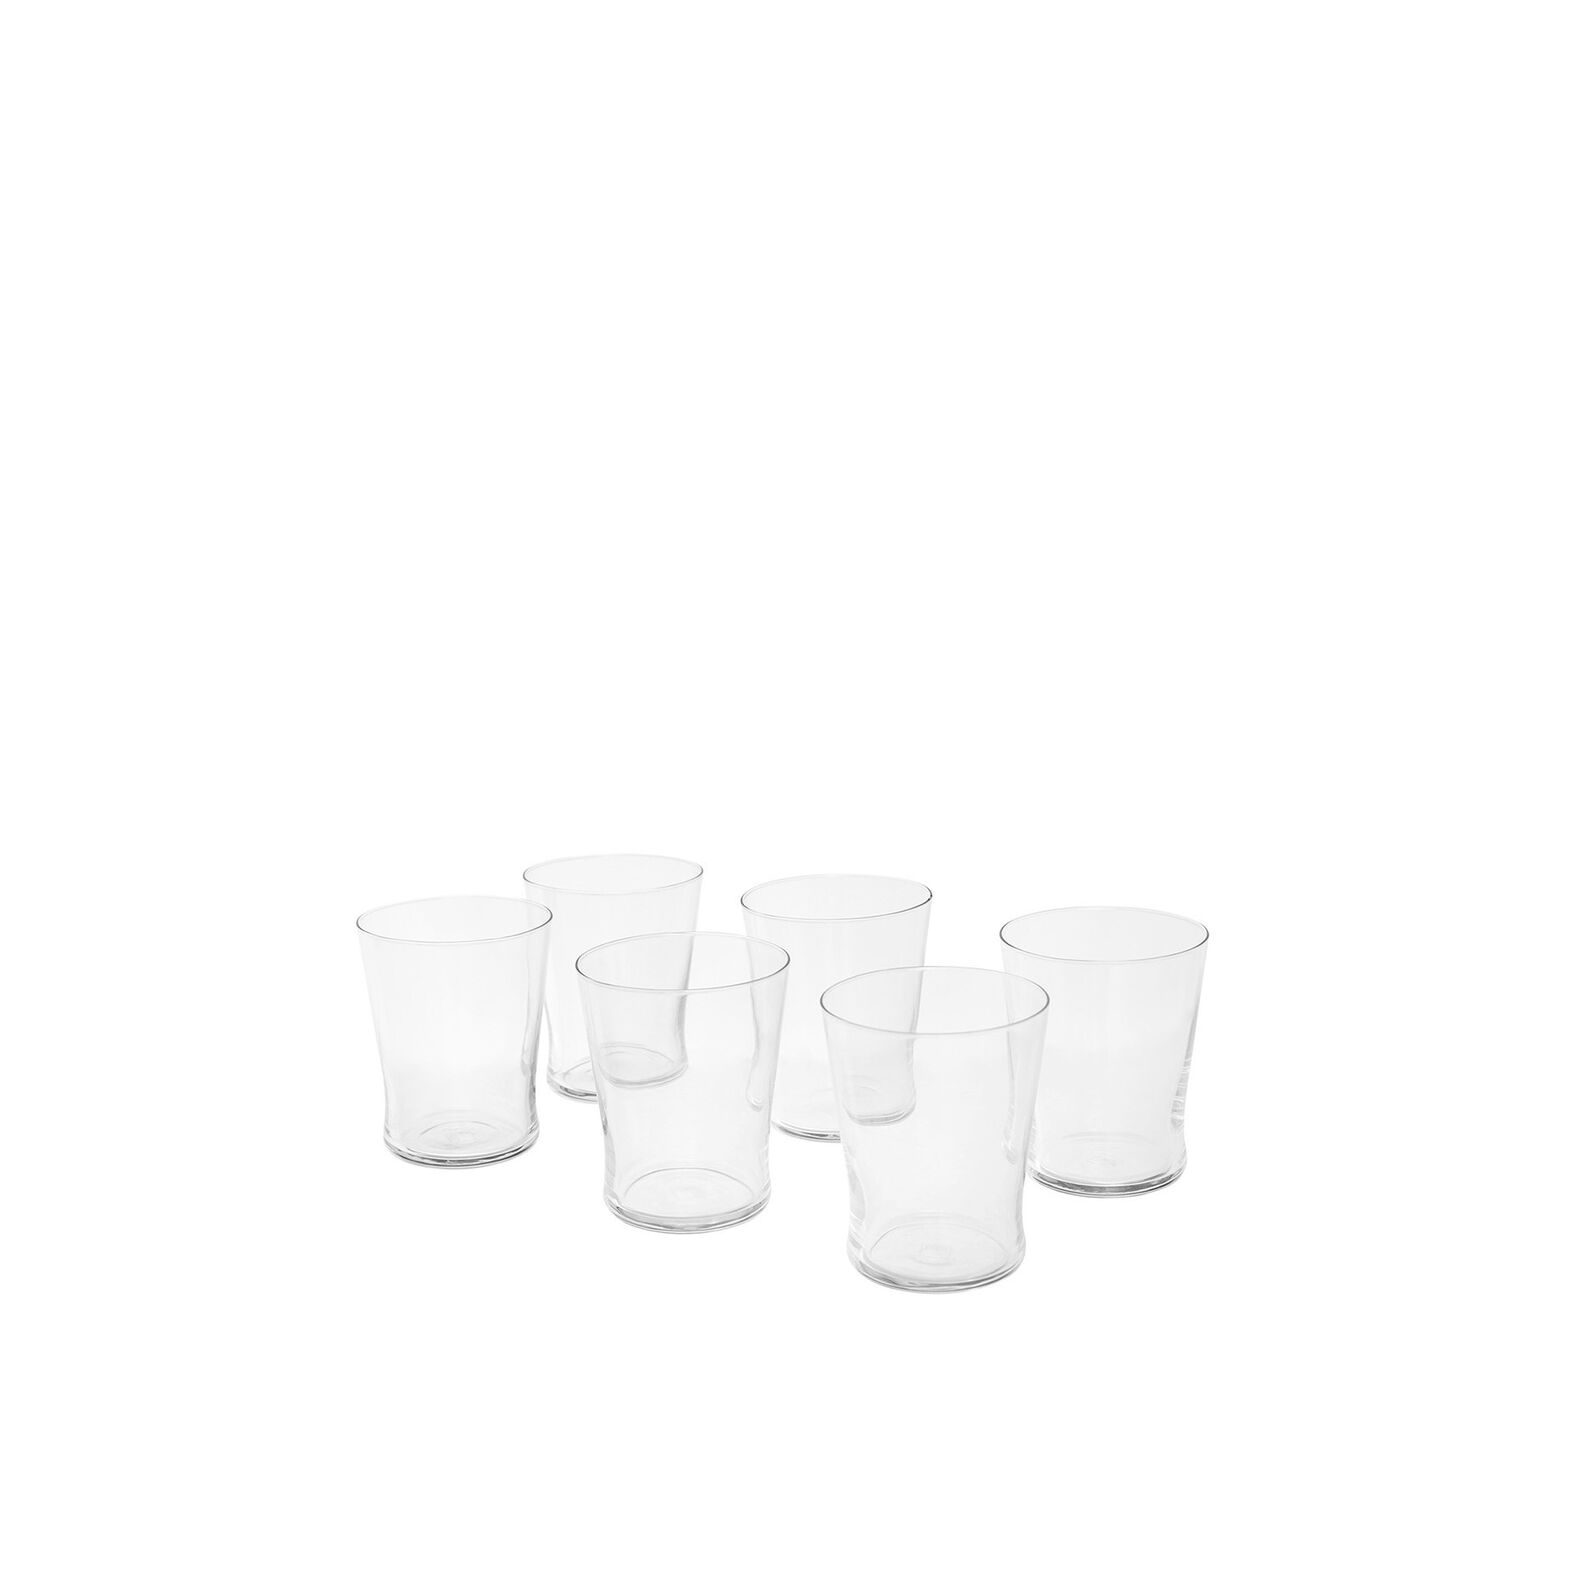 Set of 6 Conic shot glasses